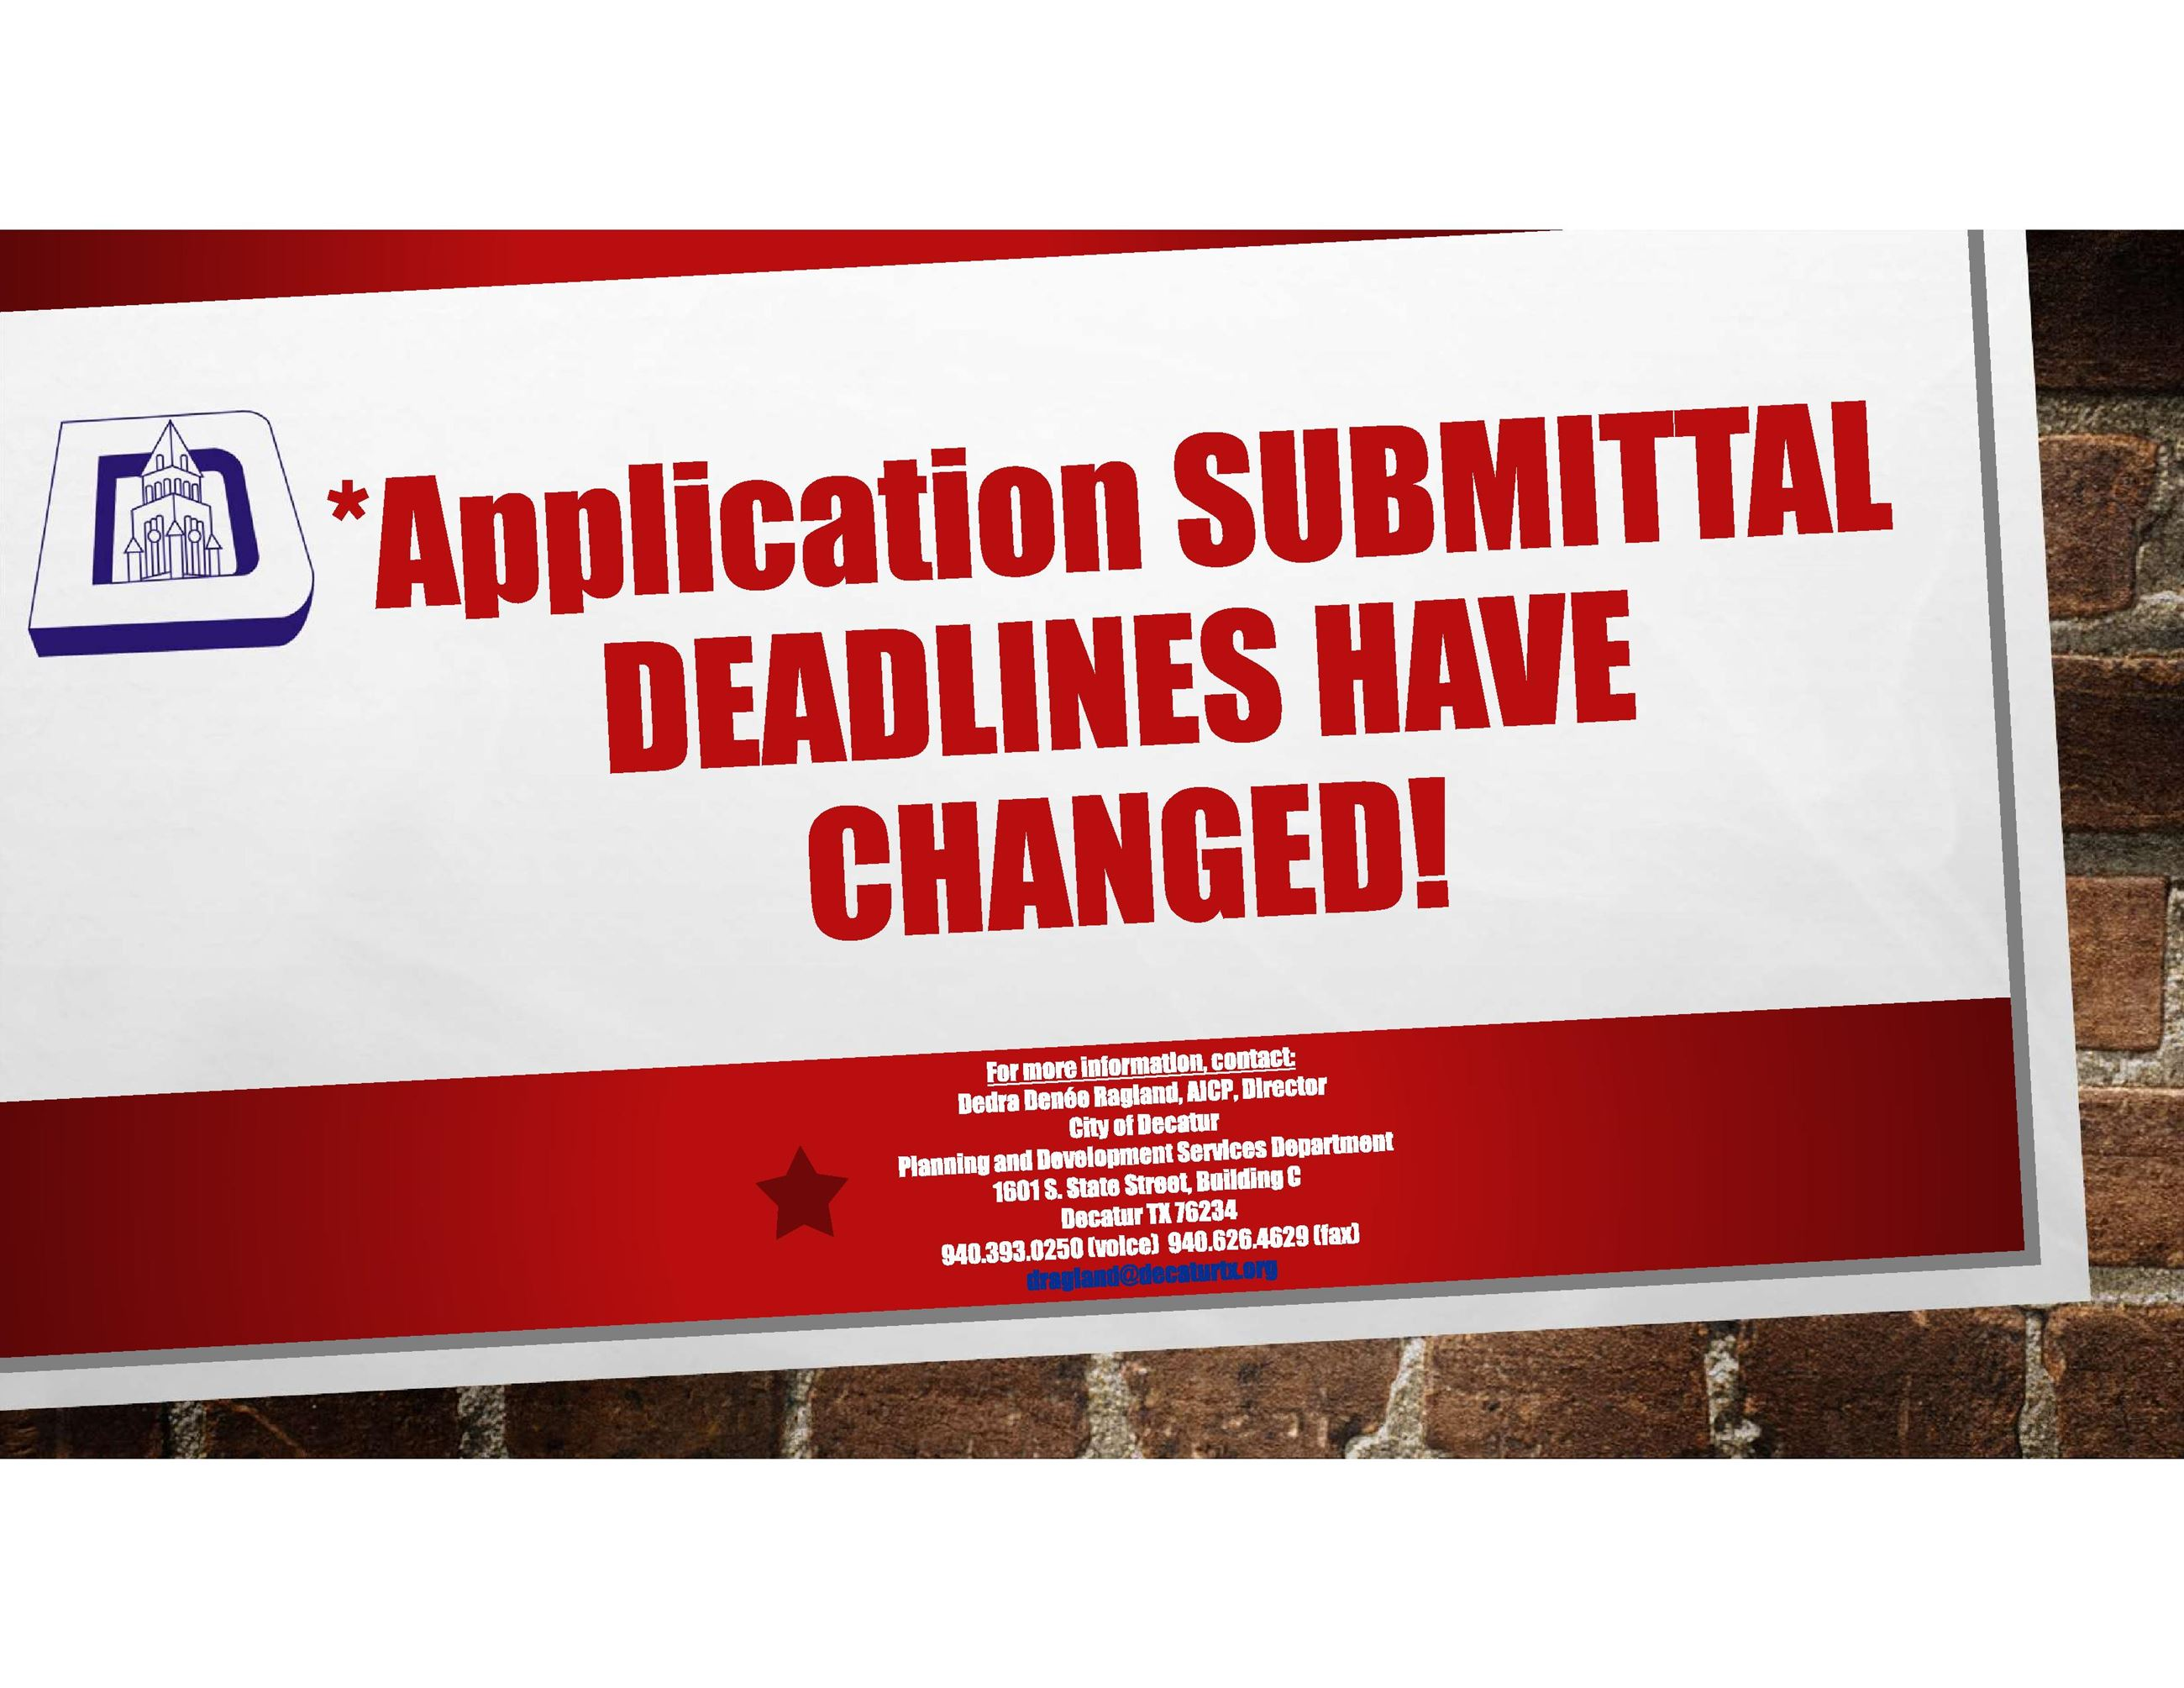 SUBMITTAL DEADLINES HAVE CHANGED v6 071020